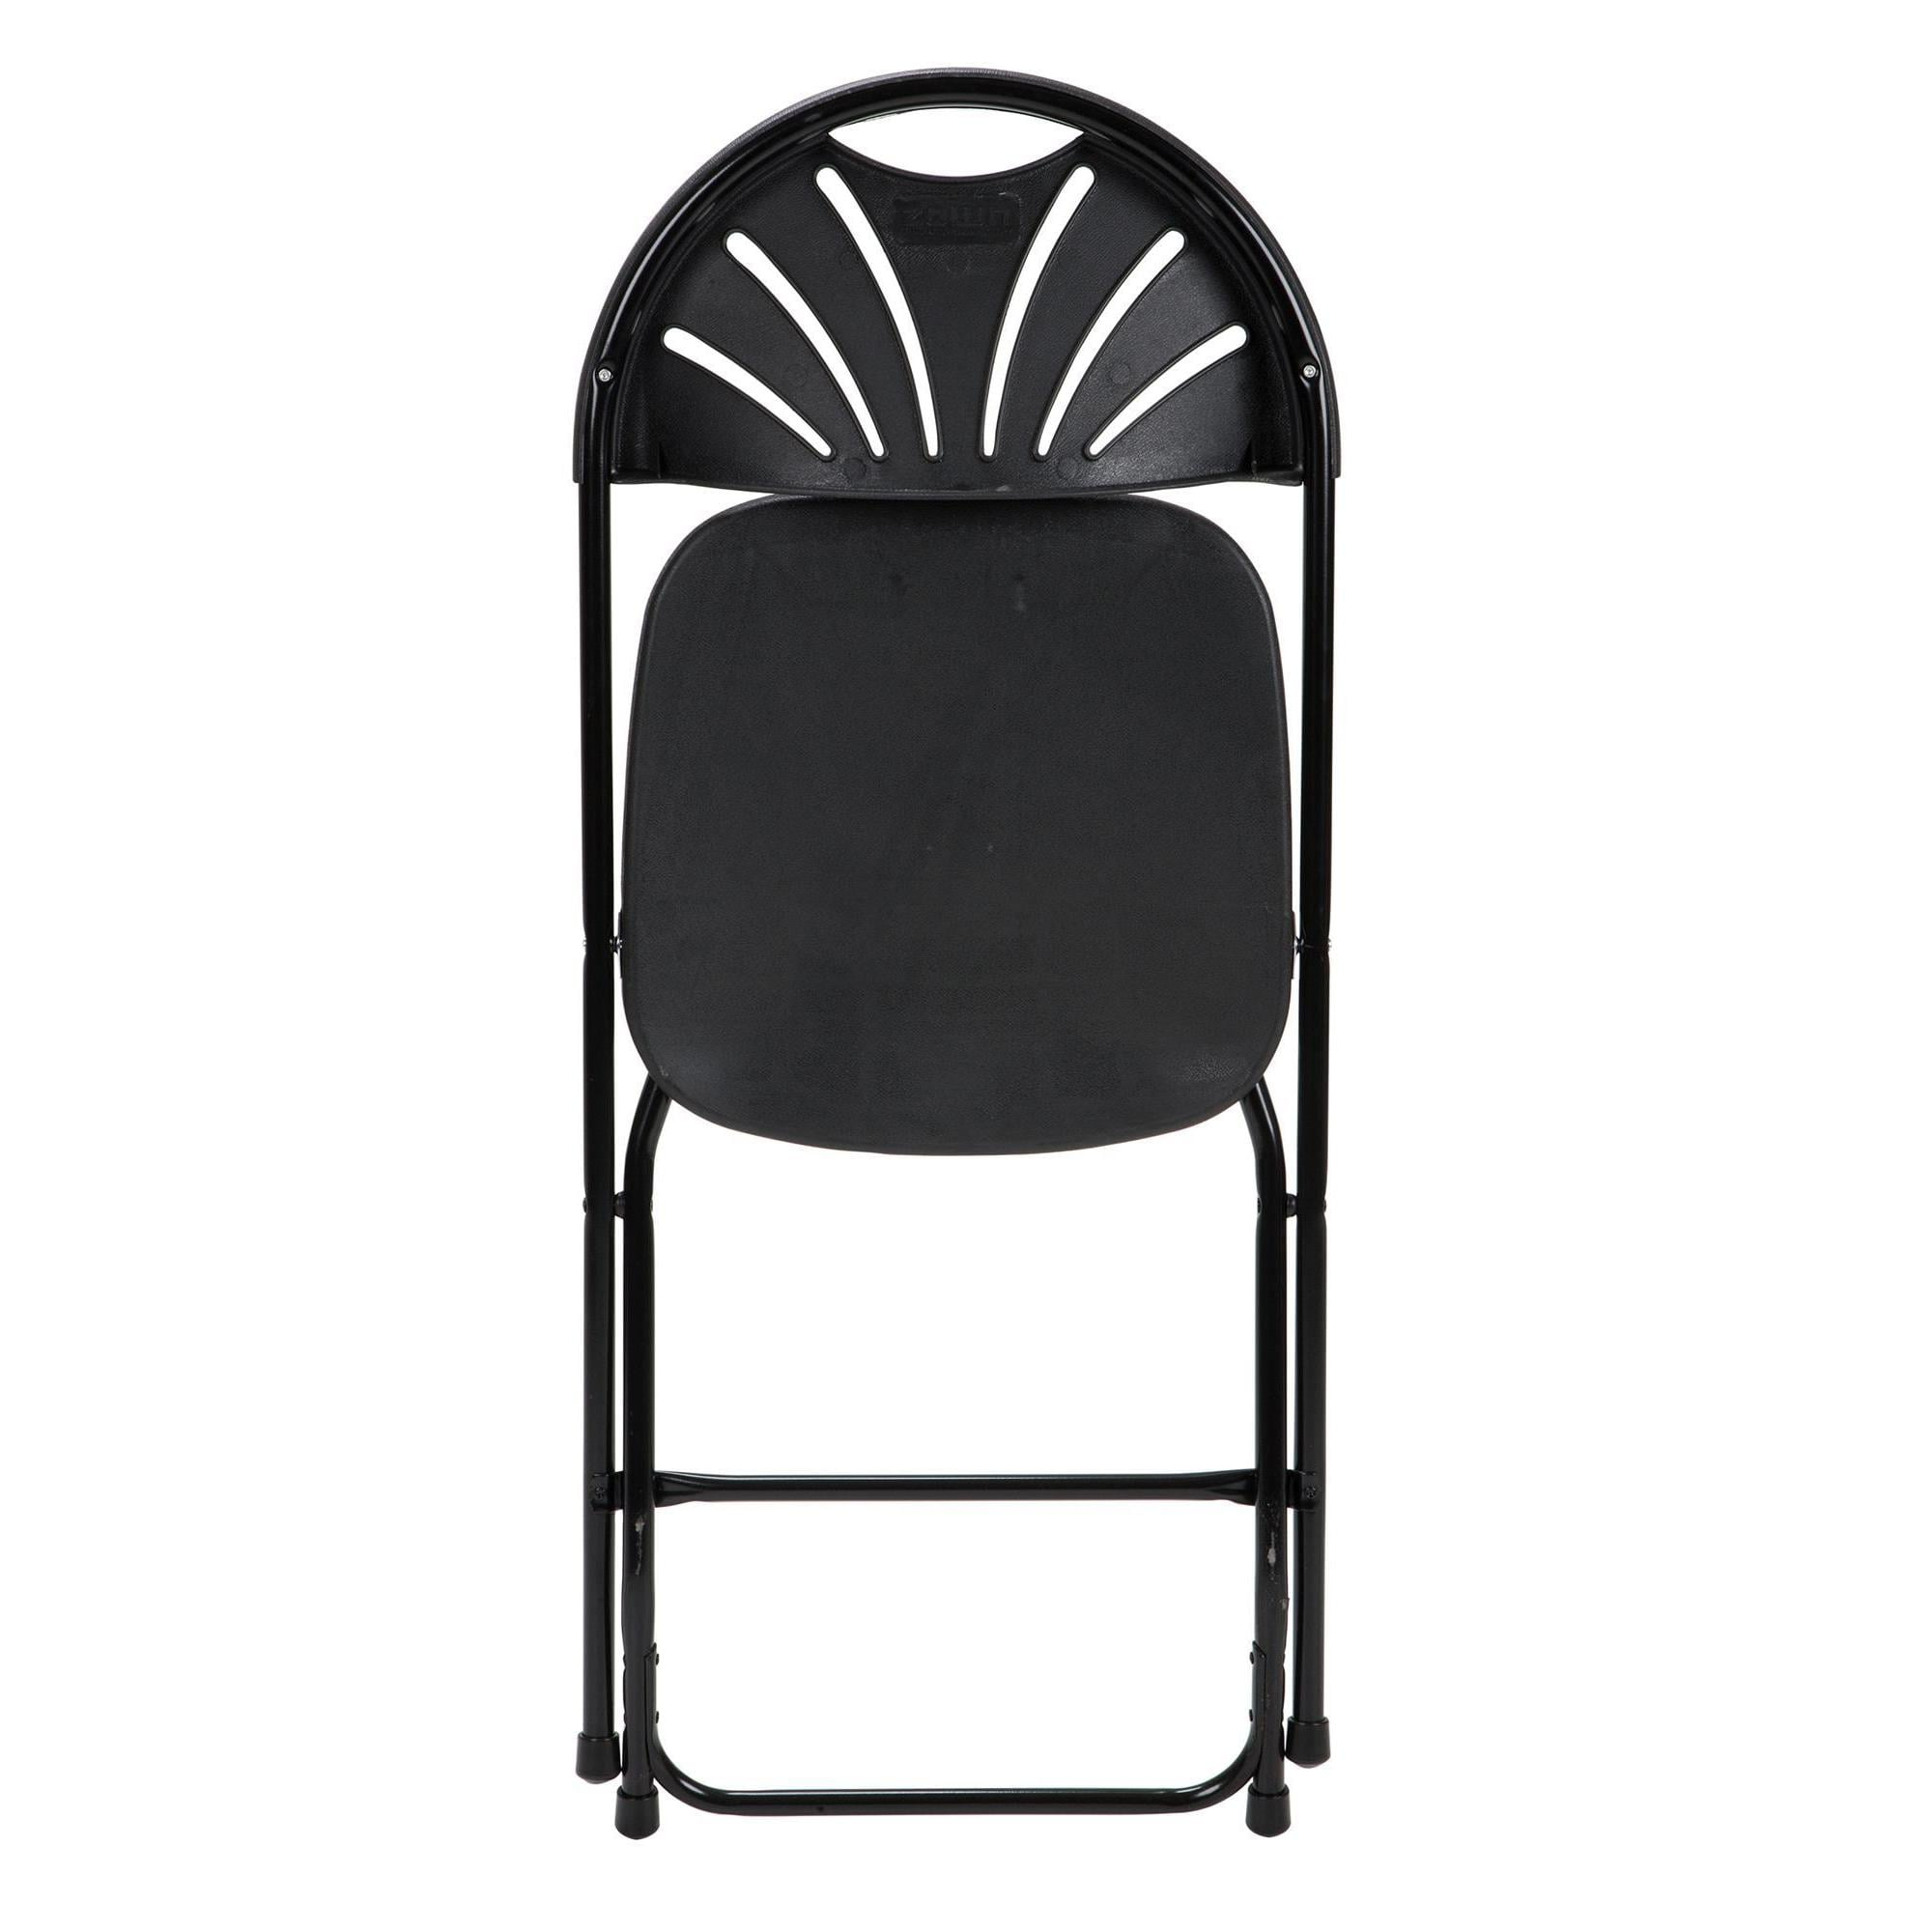 Cosco Folding Chair Cosco Commercial 8 Pack Heavy Duty Injection Mold Fan Back Black Folding Chair With Comfortable Contoured Back